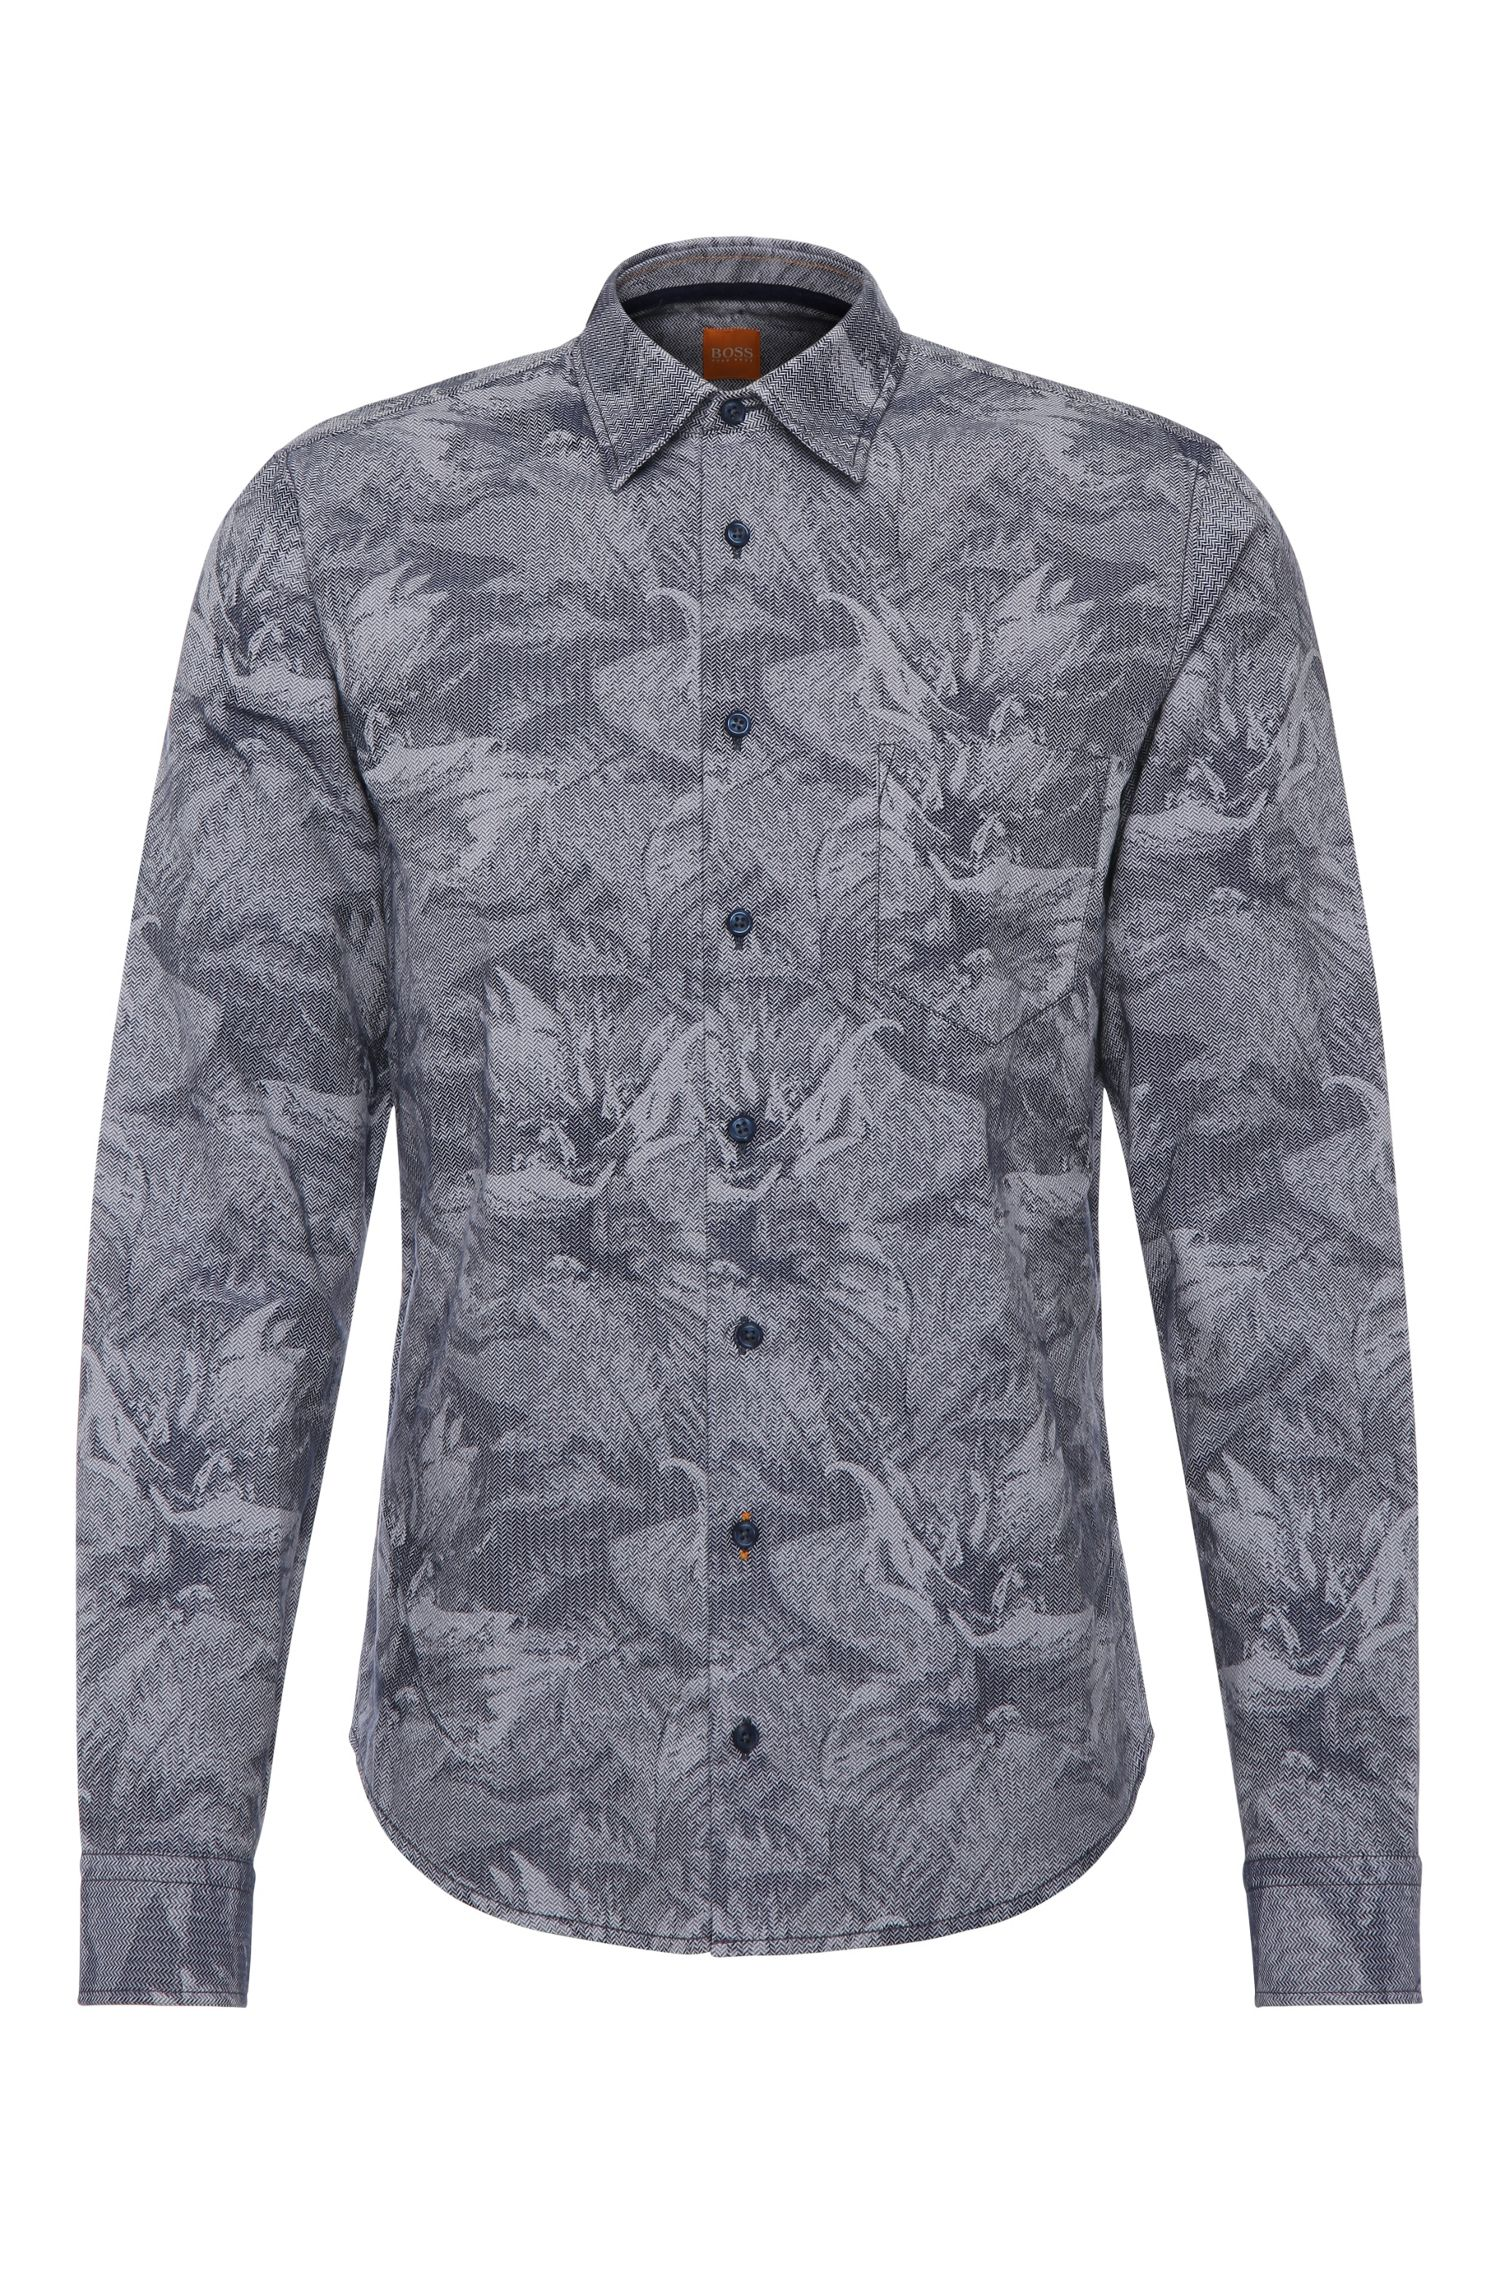 'EnameE'   Slim Fit, Cotton Printed Button Down Shirt